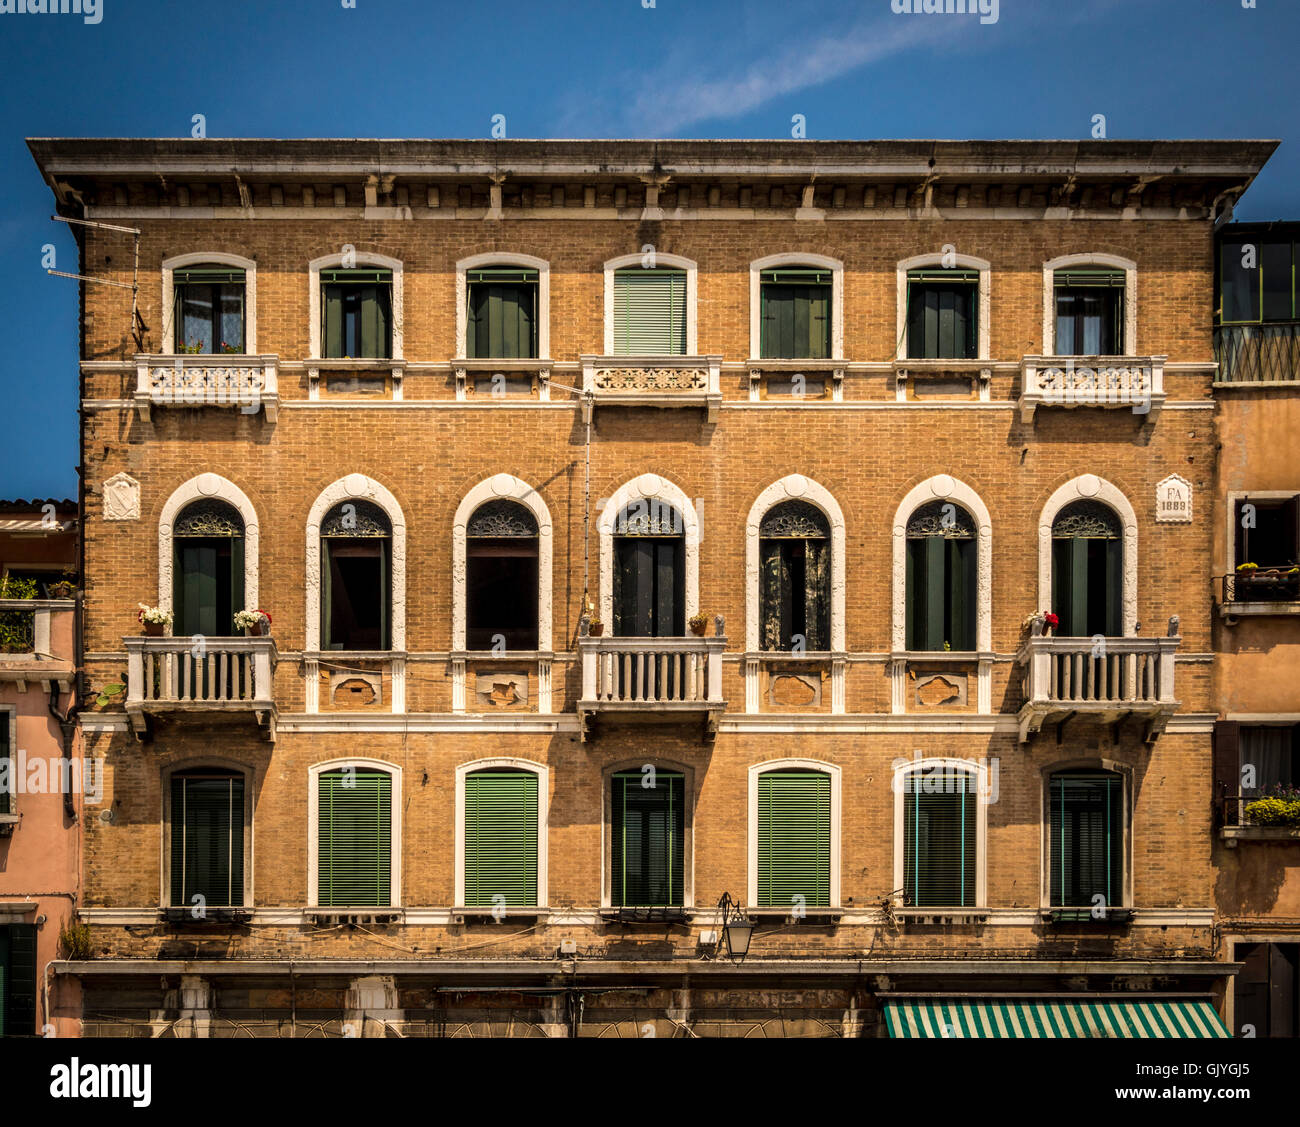 Traditional brick building with venetian blinds at the arched windows. - Stock Image